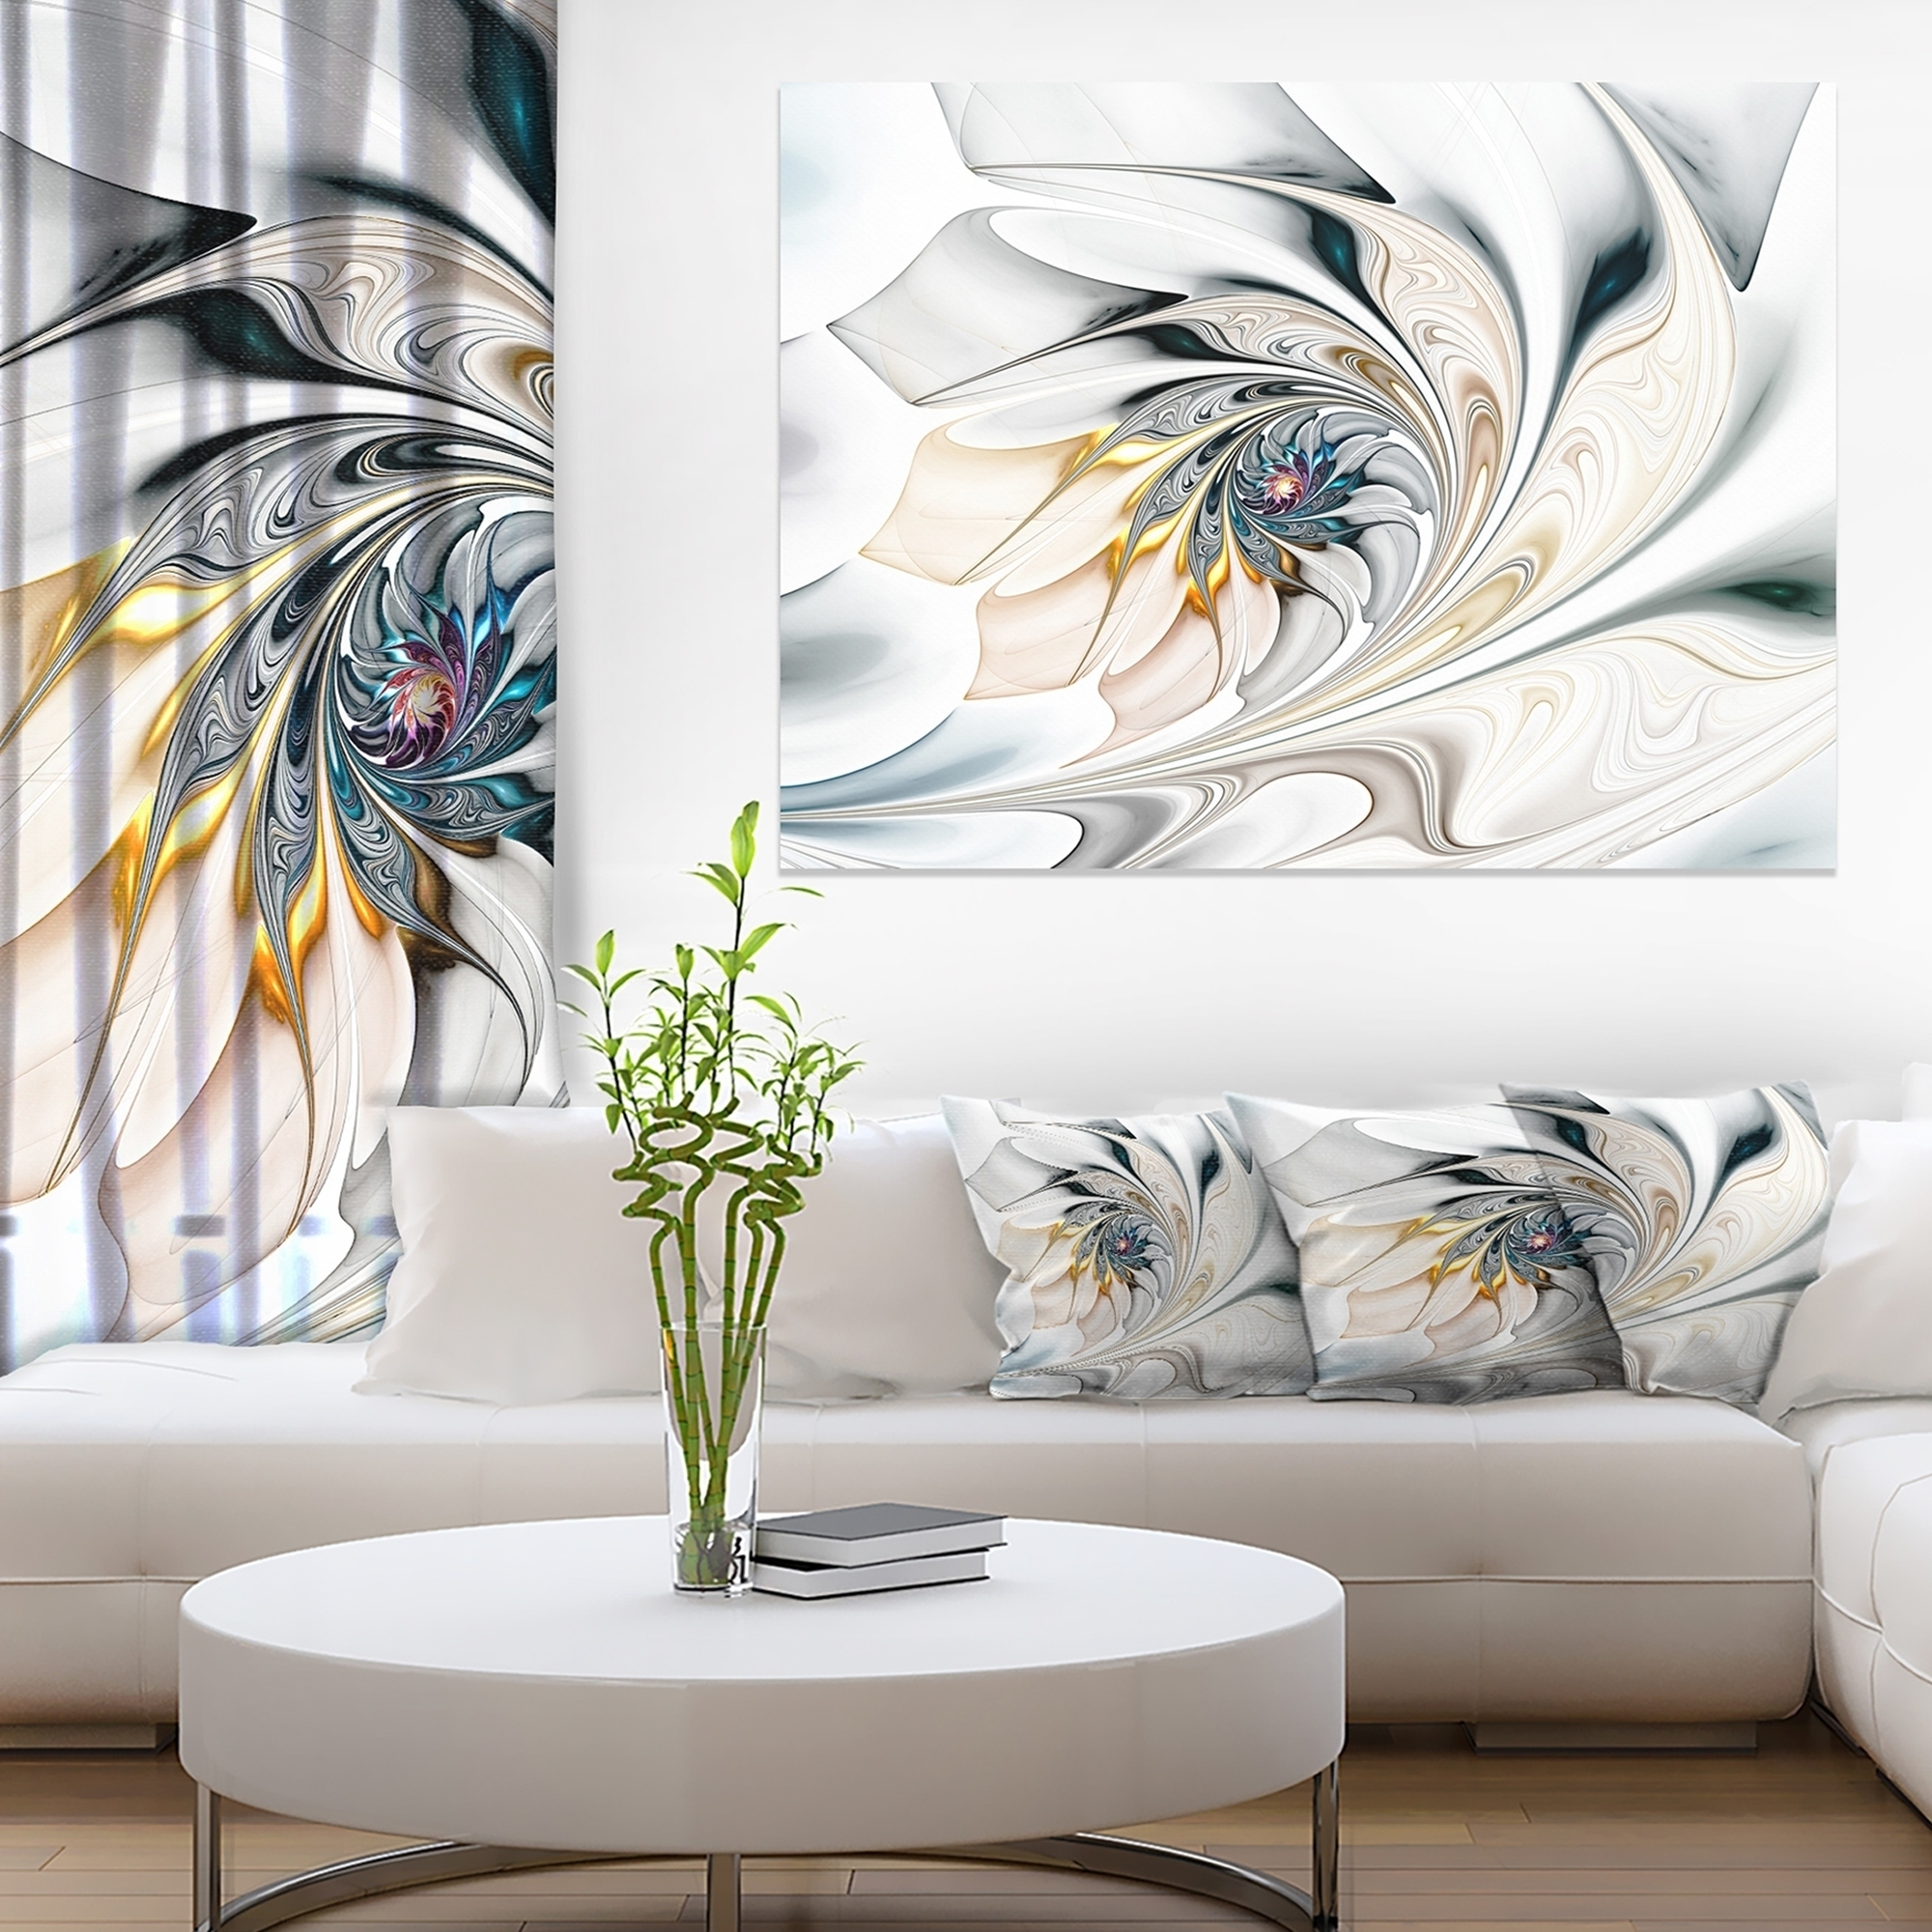 Most Recent Shop White Stained Glass Floral Art – Large Floral Wall Art Canvas With Regard To Stained Glass Wall Art (View 6 of 20)